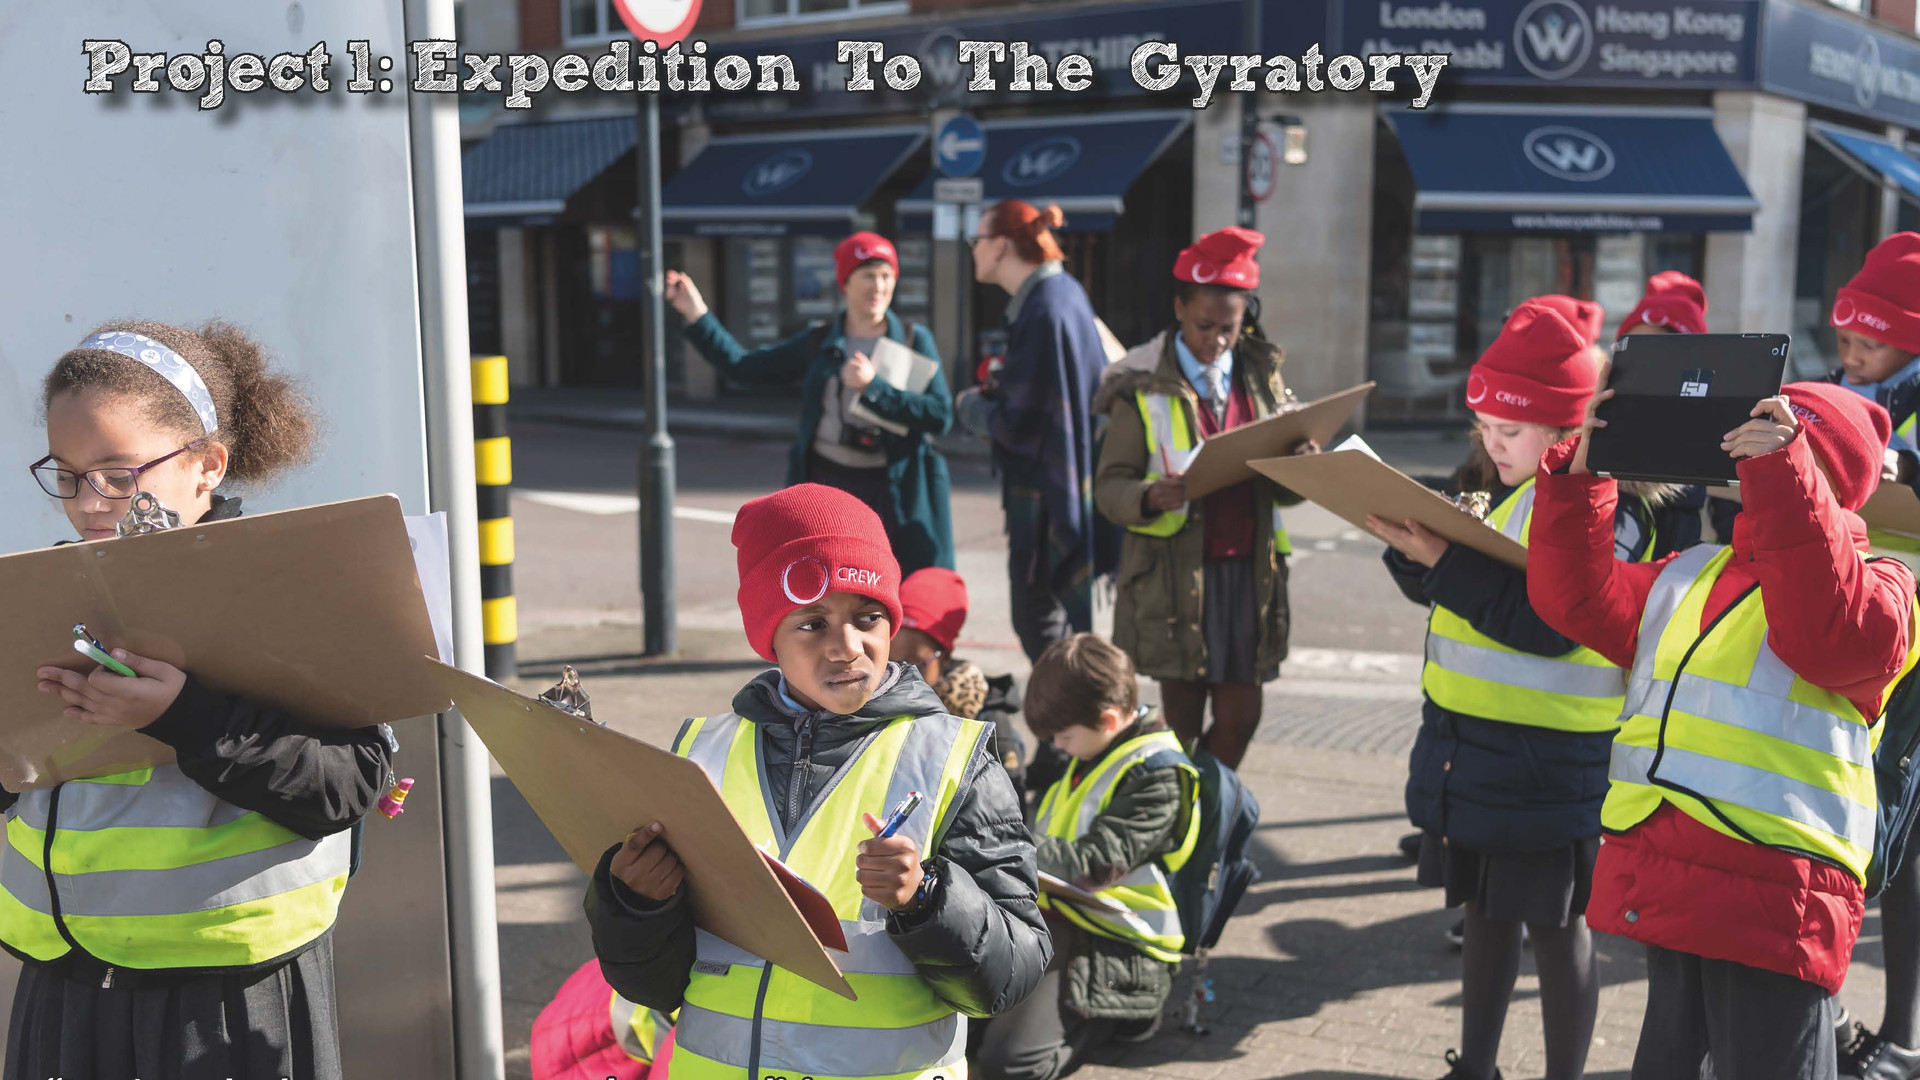 Expedition to the Gyratory